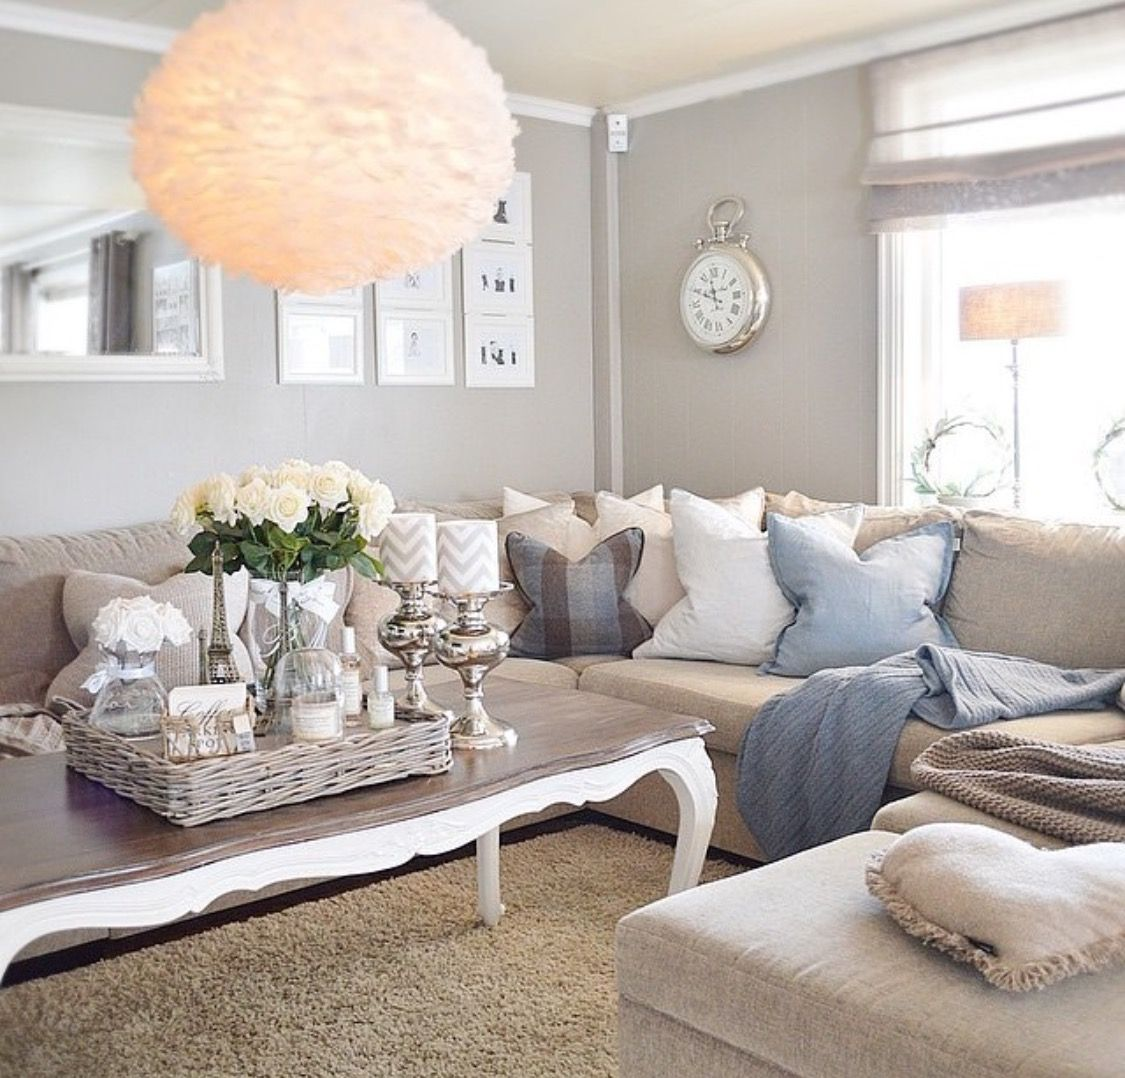 Pin von Kimberly Reed auf Home is where the heart is... | Pinterest